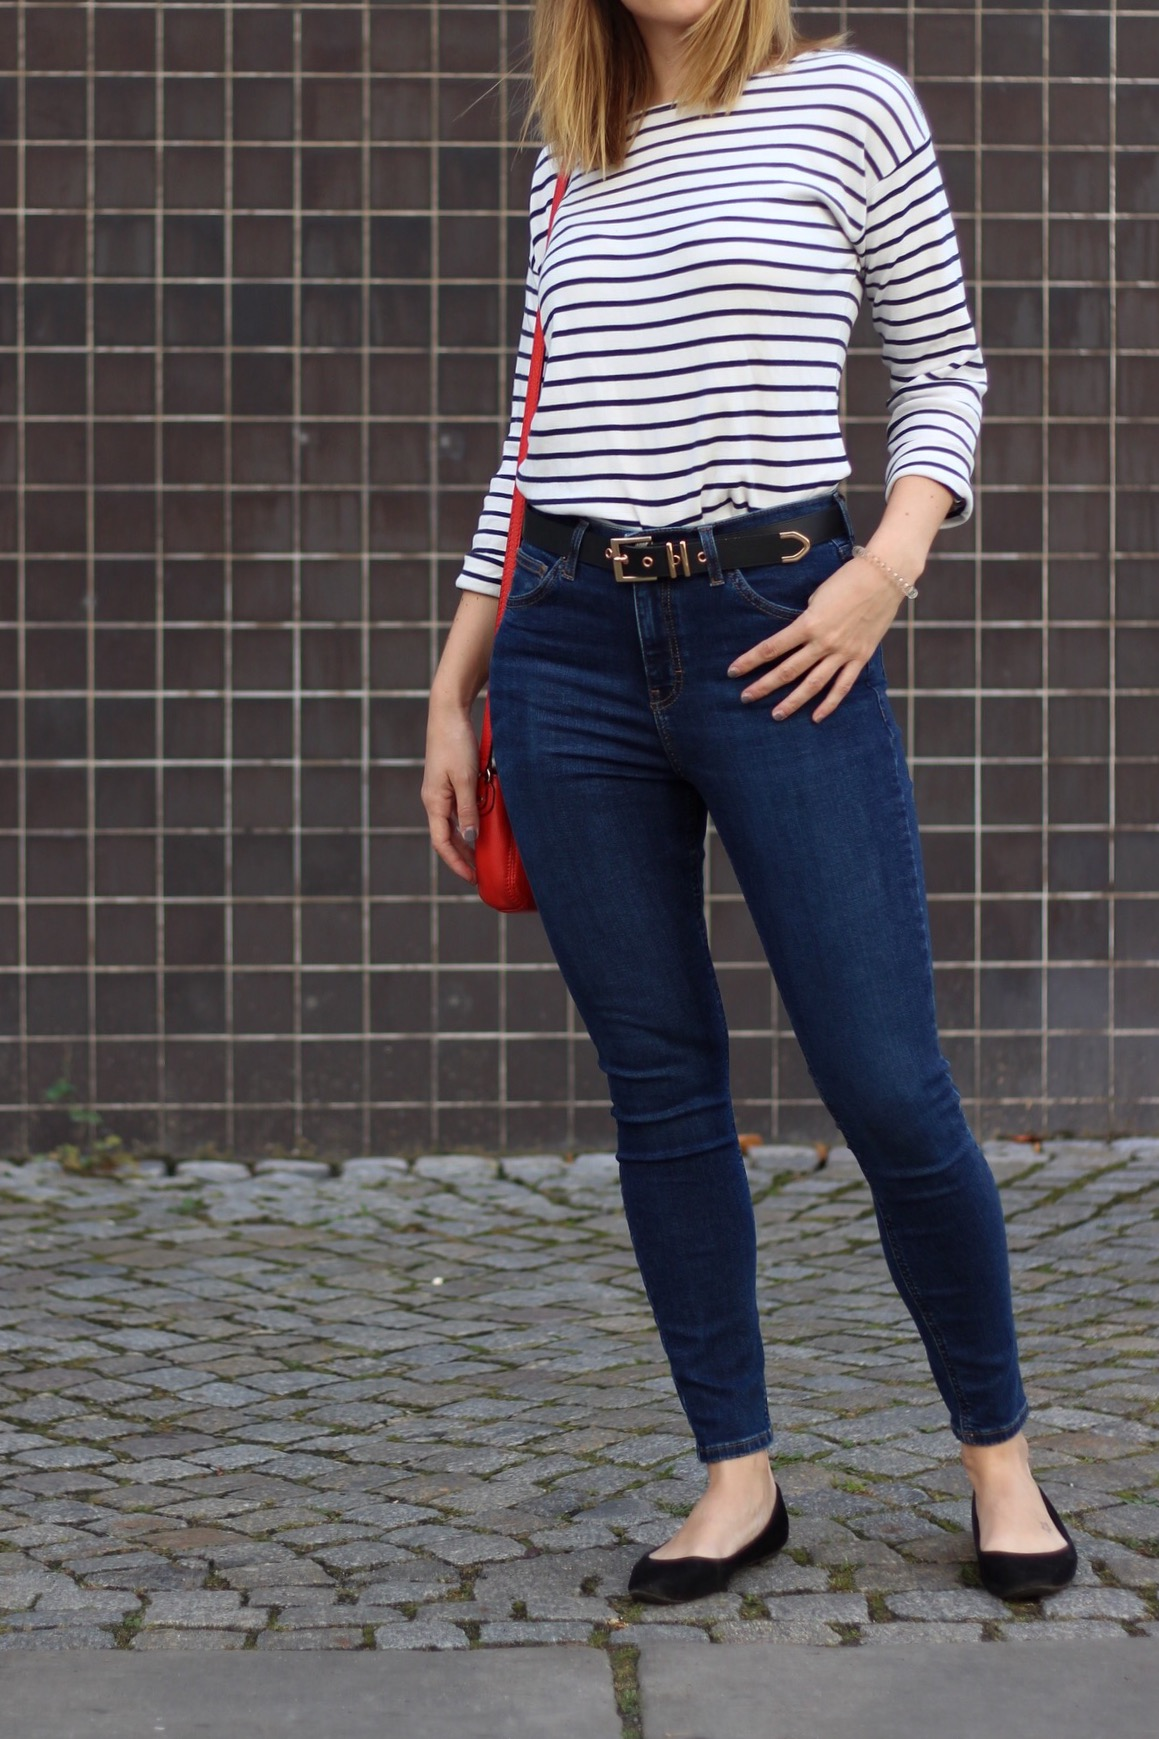 topshop-jamie-jeans-outfit-gestreiftes-shirt